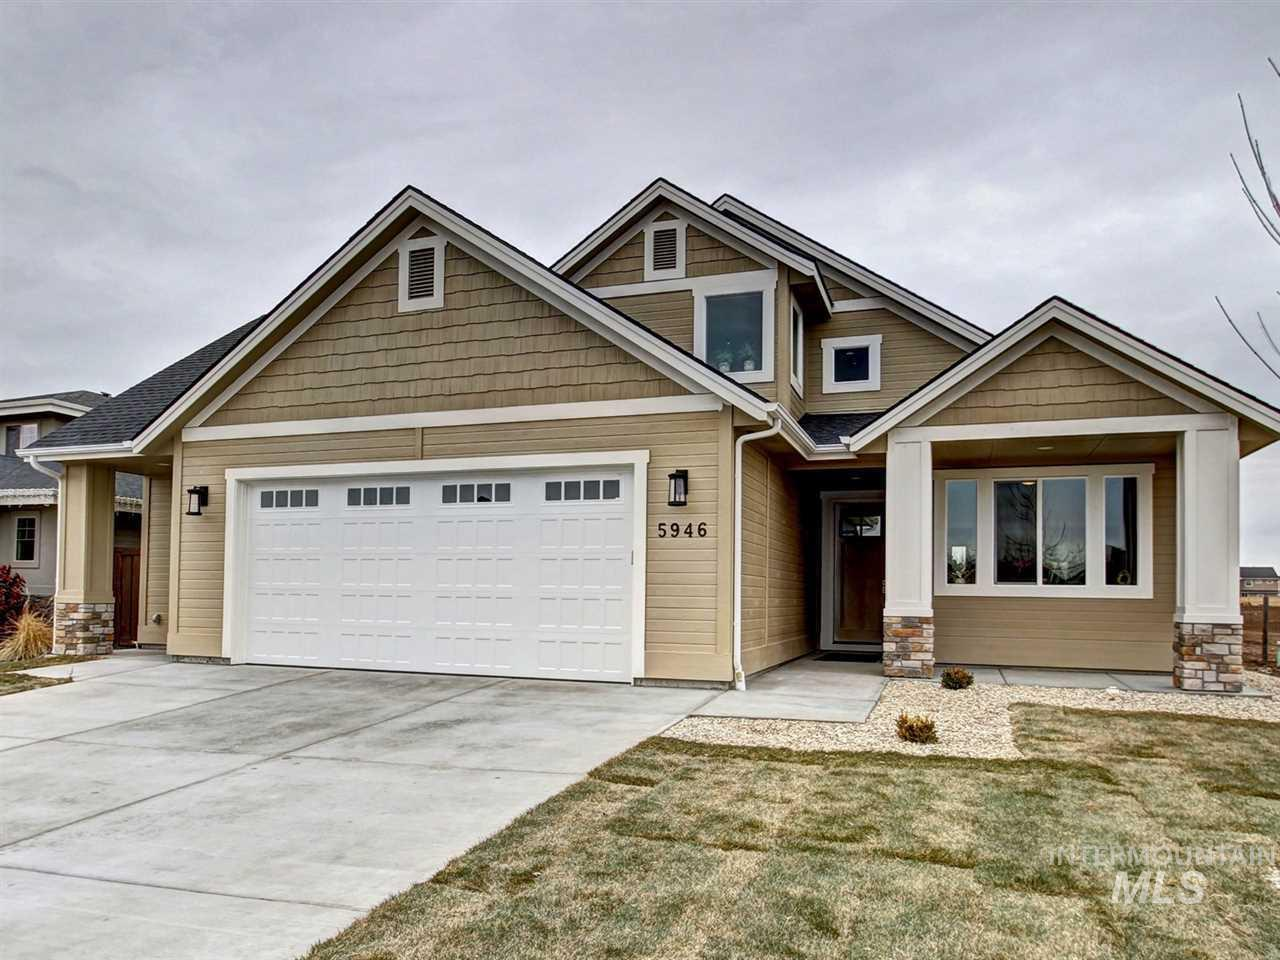 5978 S Stockport Ave, Meridian ID 83642